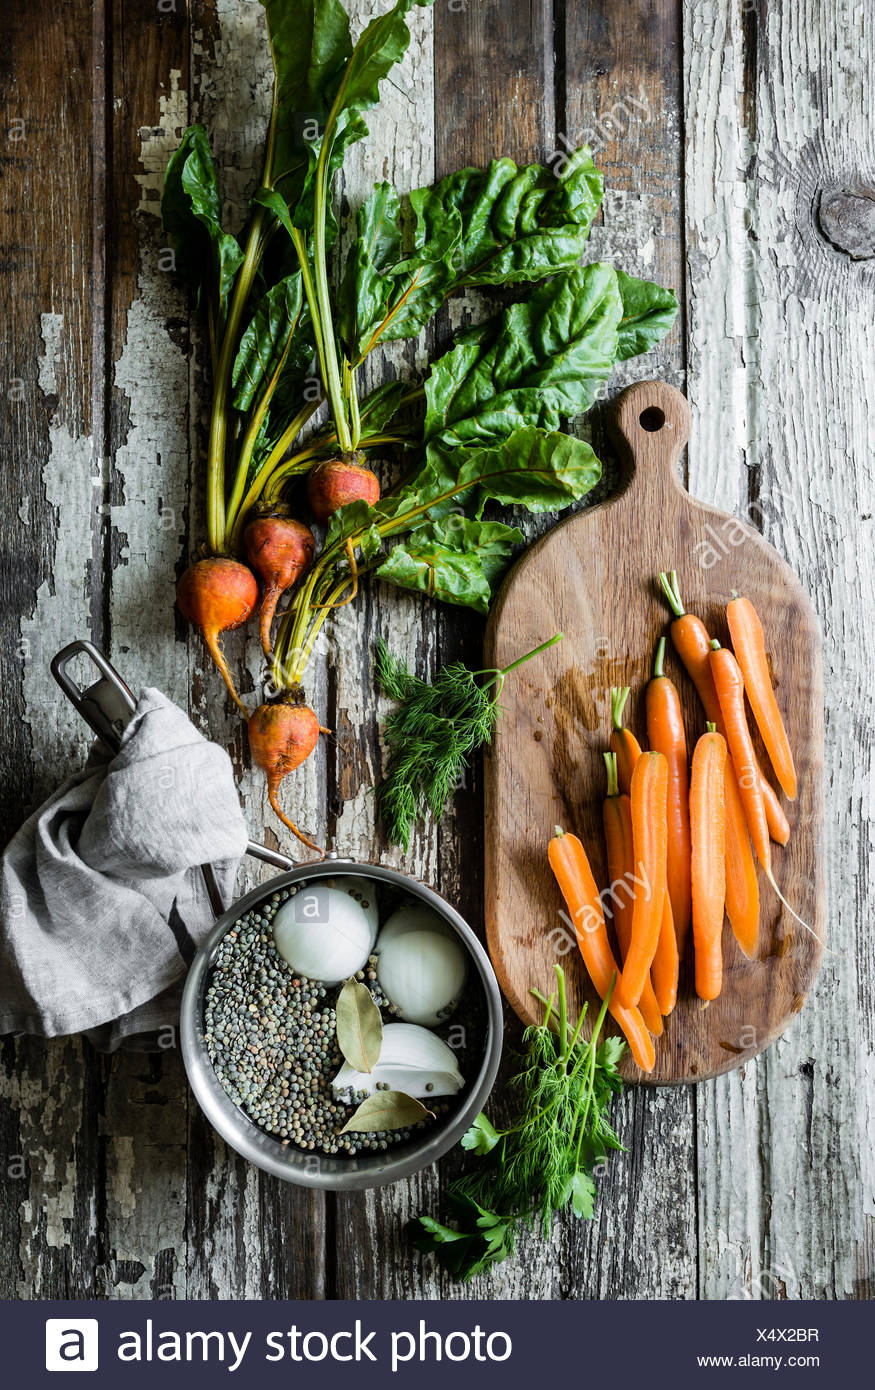 Carrots, beets and lentils on a vintage wooden table background - Stock Image